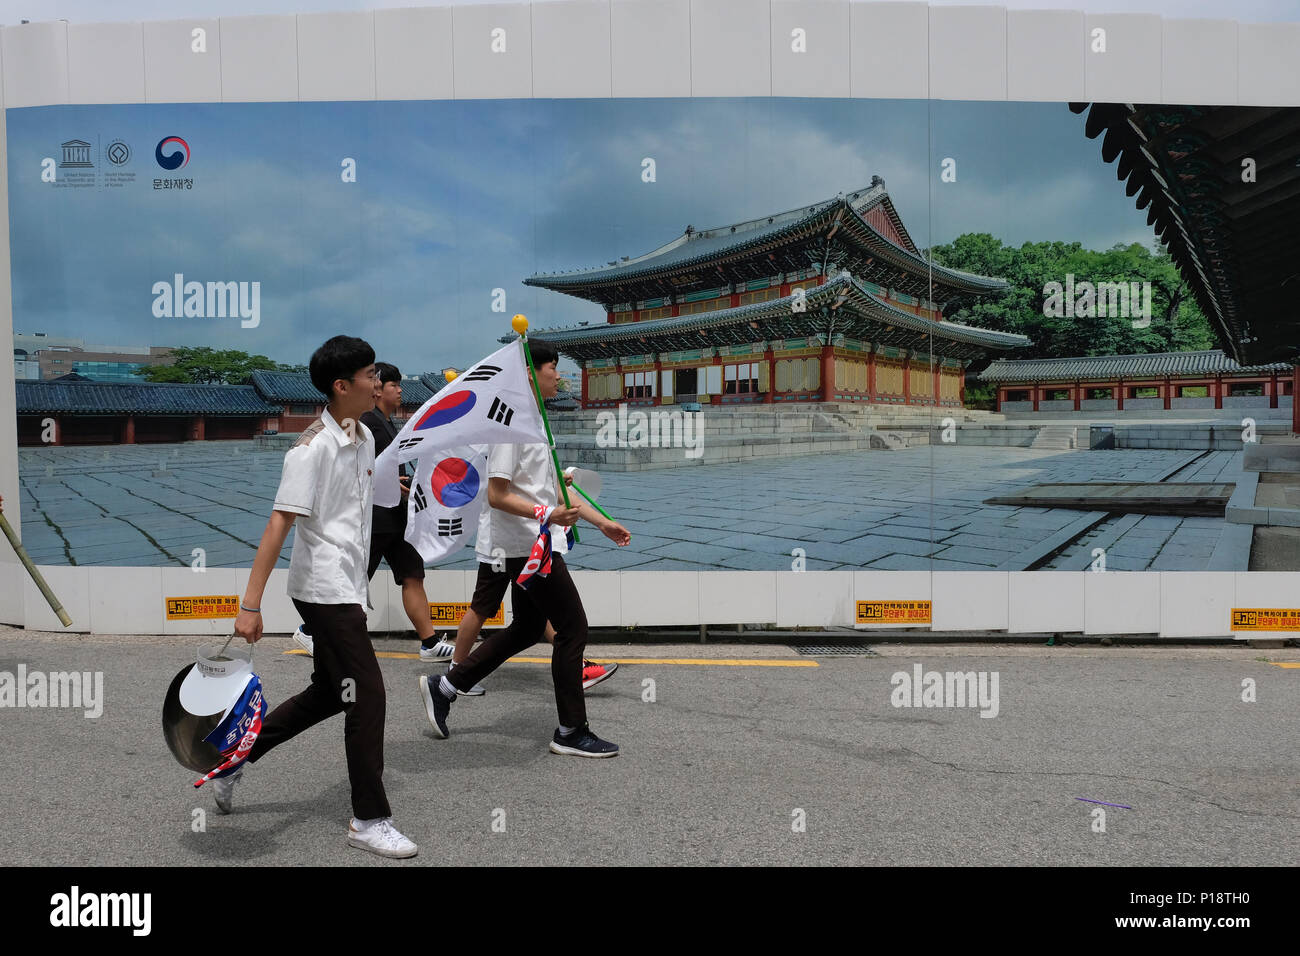 Korean schoolchildren holding South Korean flags reenact the March 1st Movement, also known as Sam-il Movement against Japanese colonial rule that occurred on March 1, 1919, hence the movement's name, in the city of Seoul capital of South Korea Stock Photo